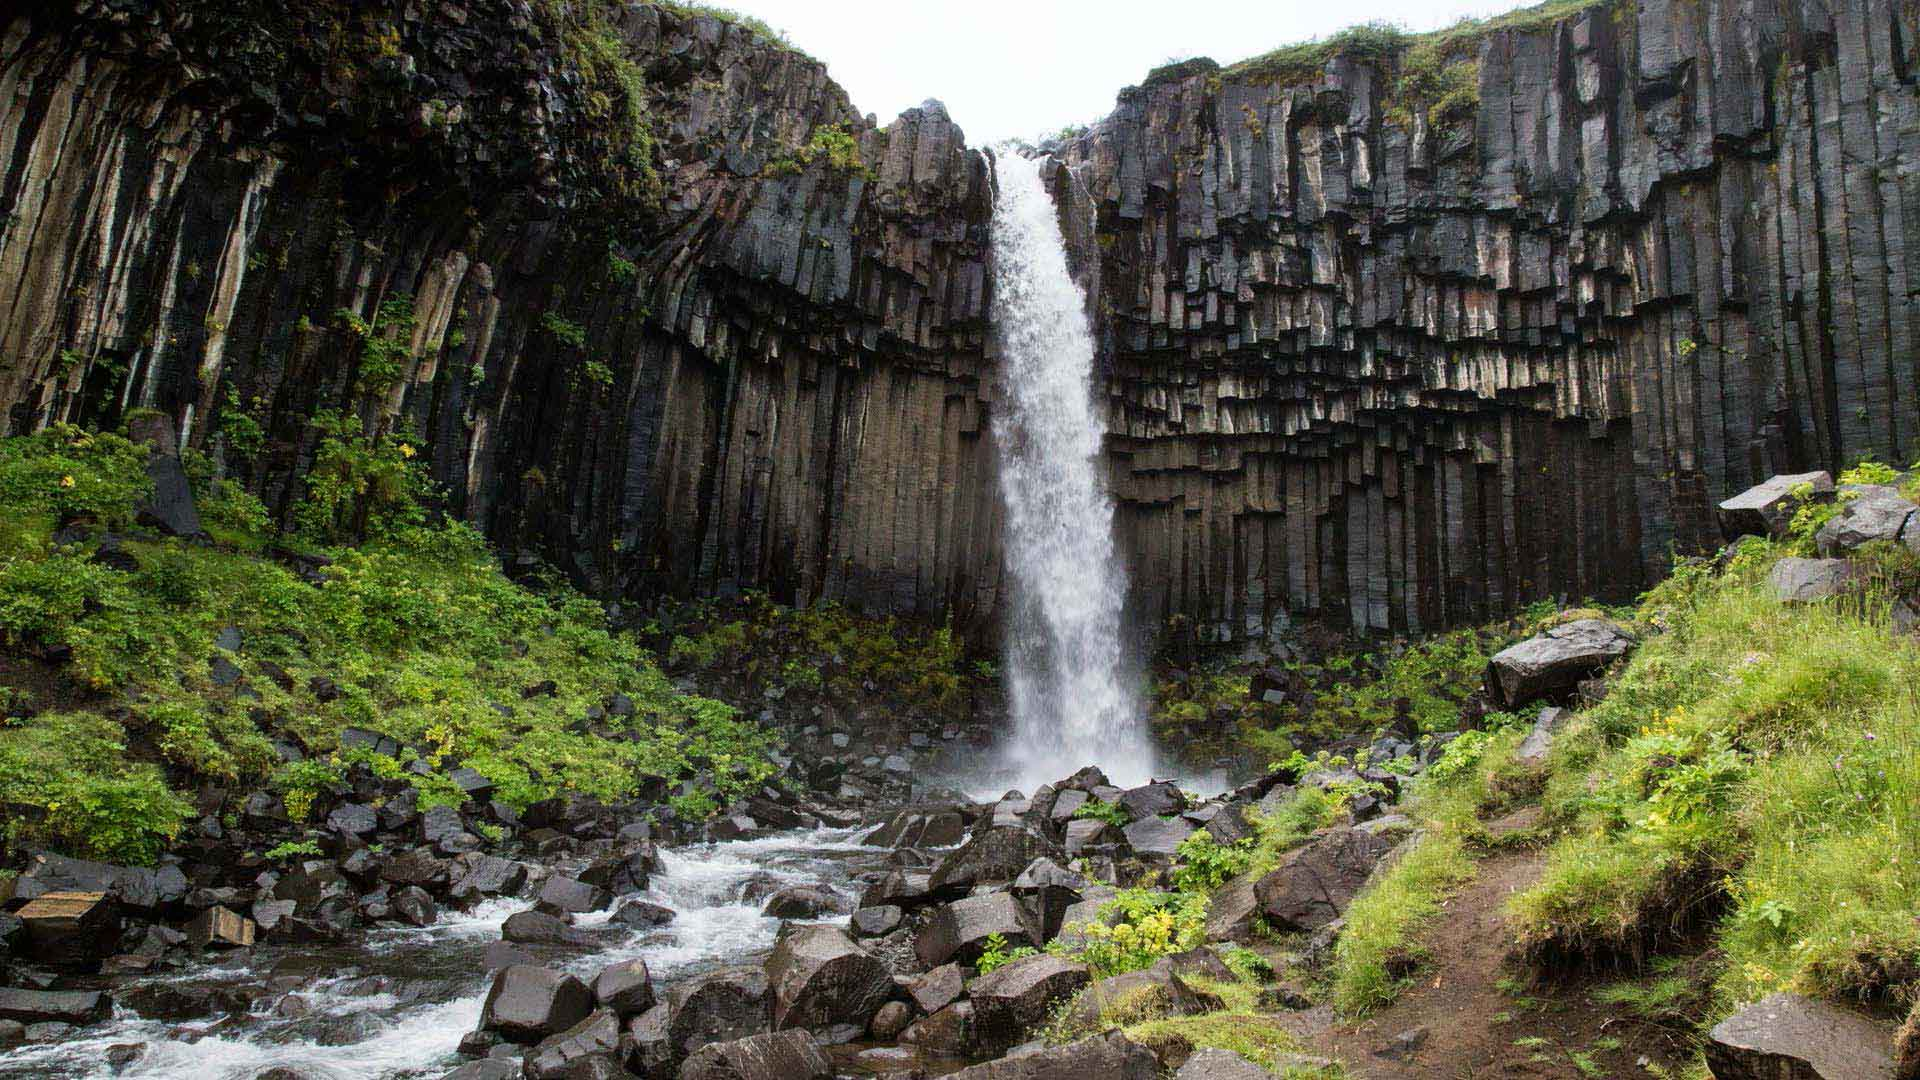 Svartifoss waterfall is renowned for its dark cliffs of basalt columns